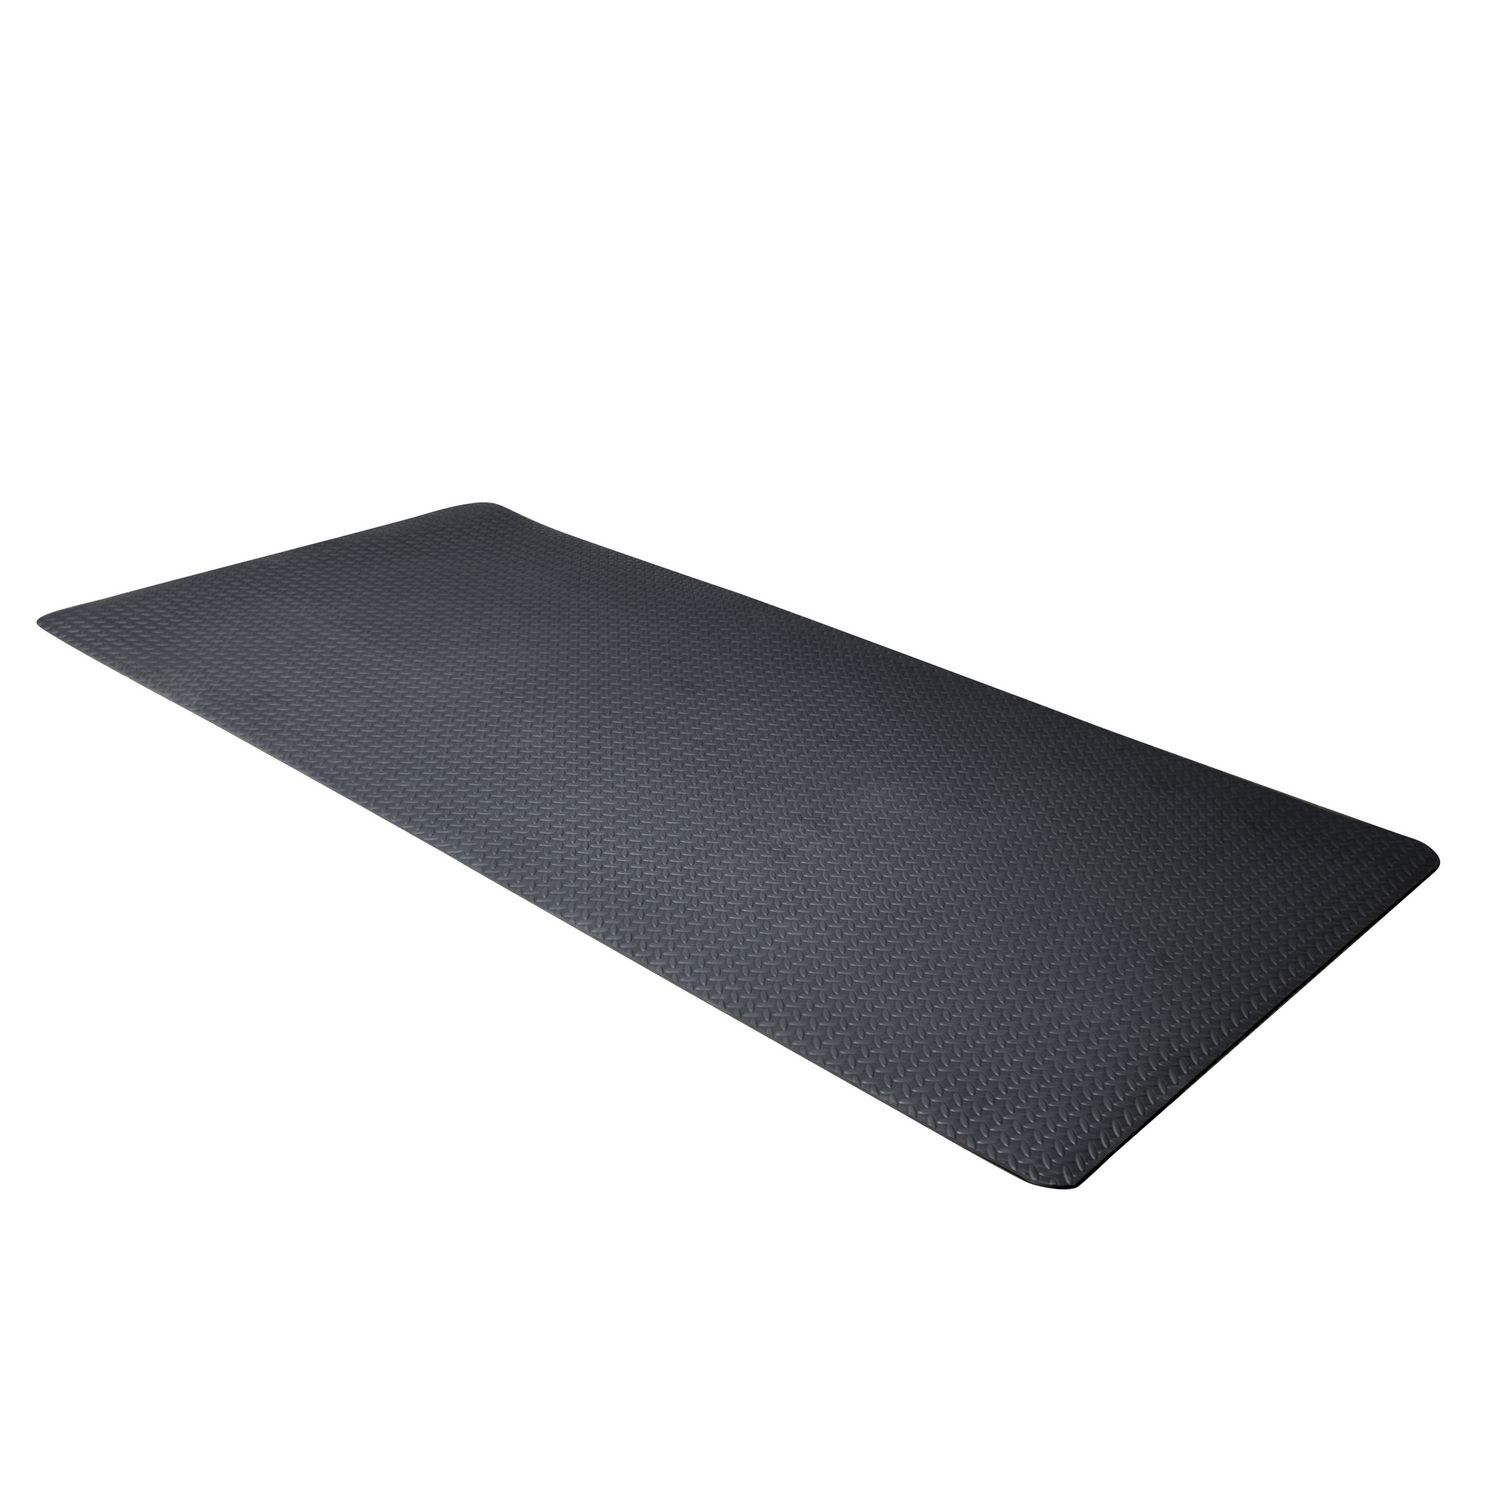 Gym exercise mats in canada at walmart cap antimicrobial eva foam mat dailygadgetfo Image collections